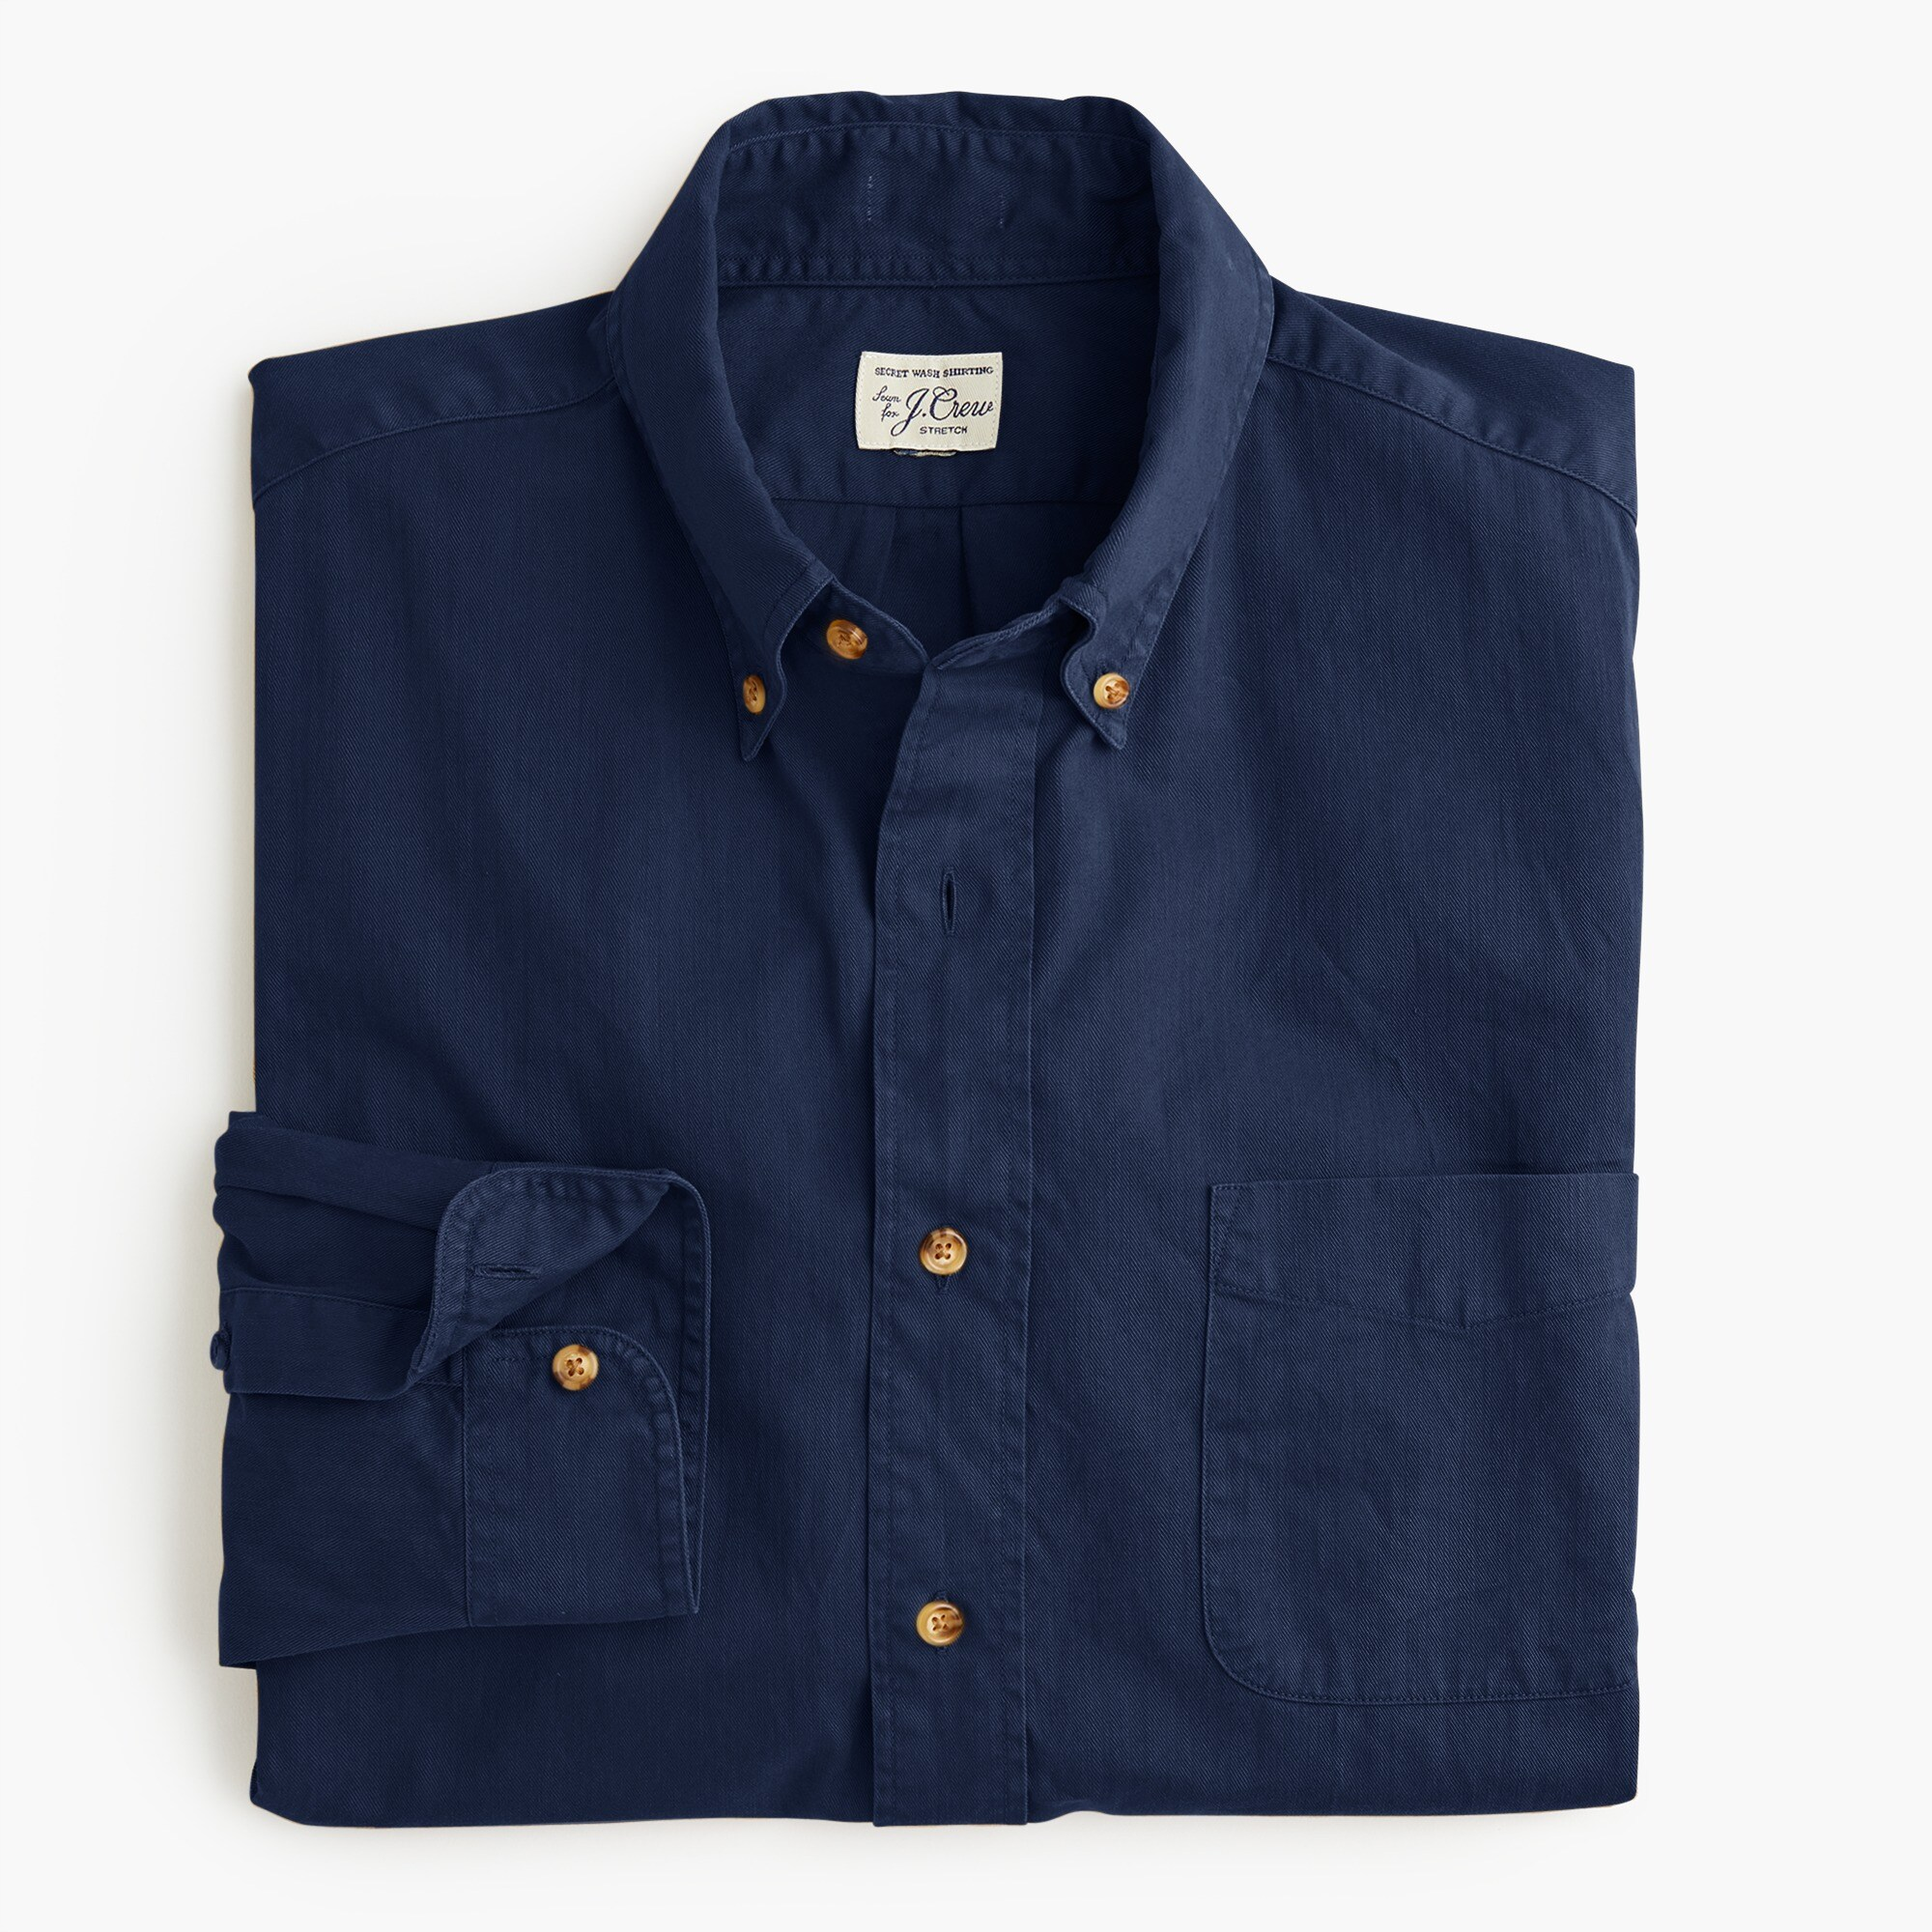 mens The 1987 twill shirt